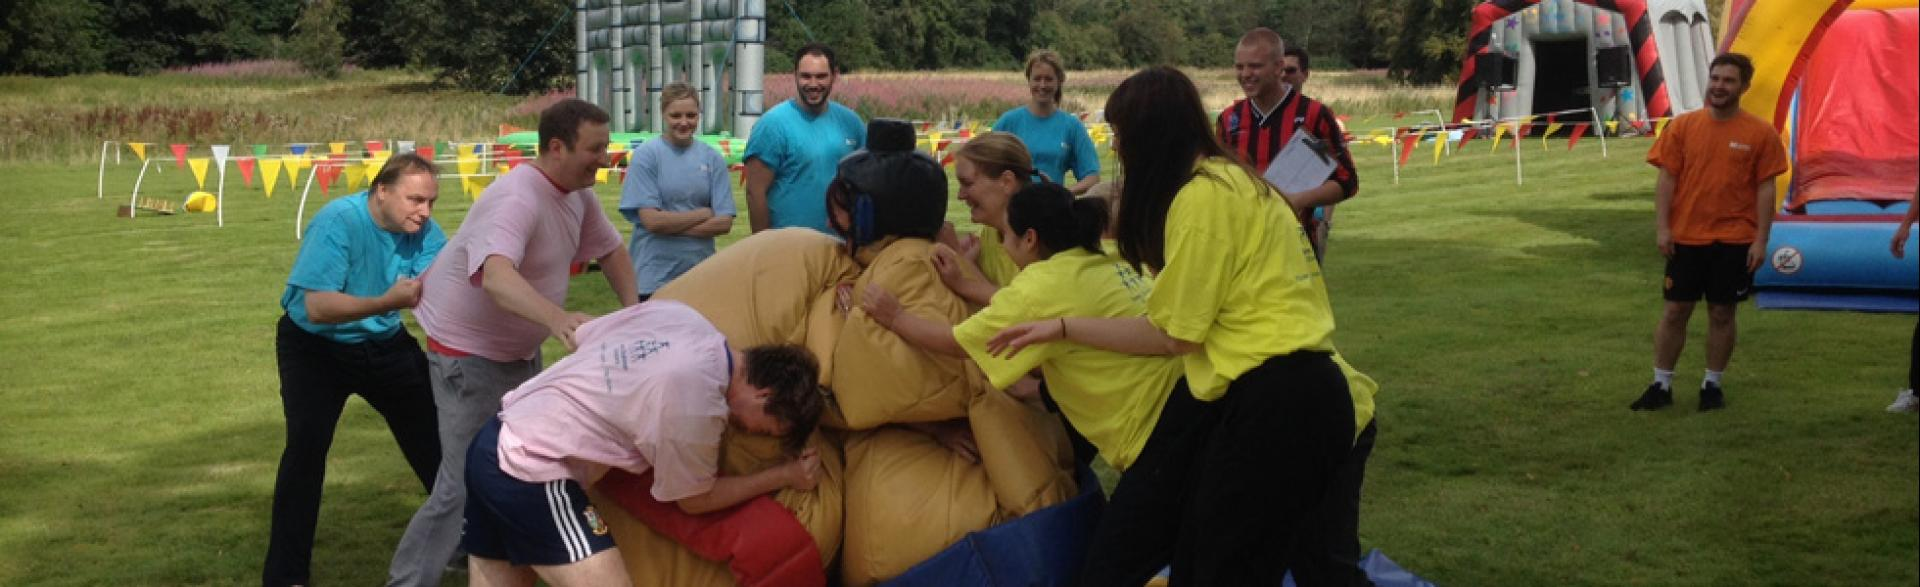 It's a Knockout, Edinburgh, August 2014